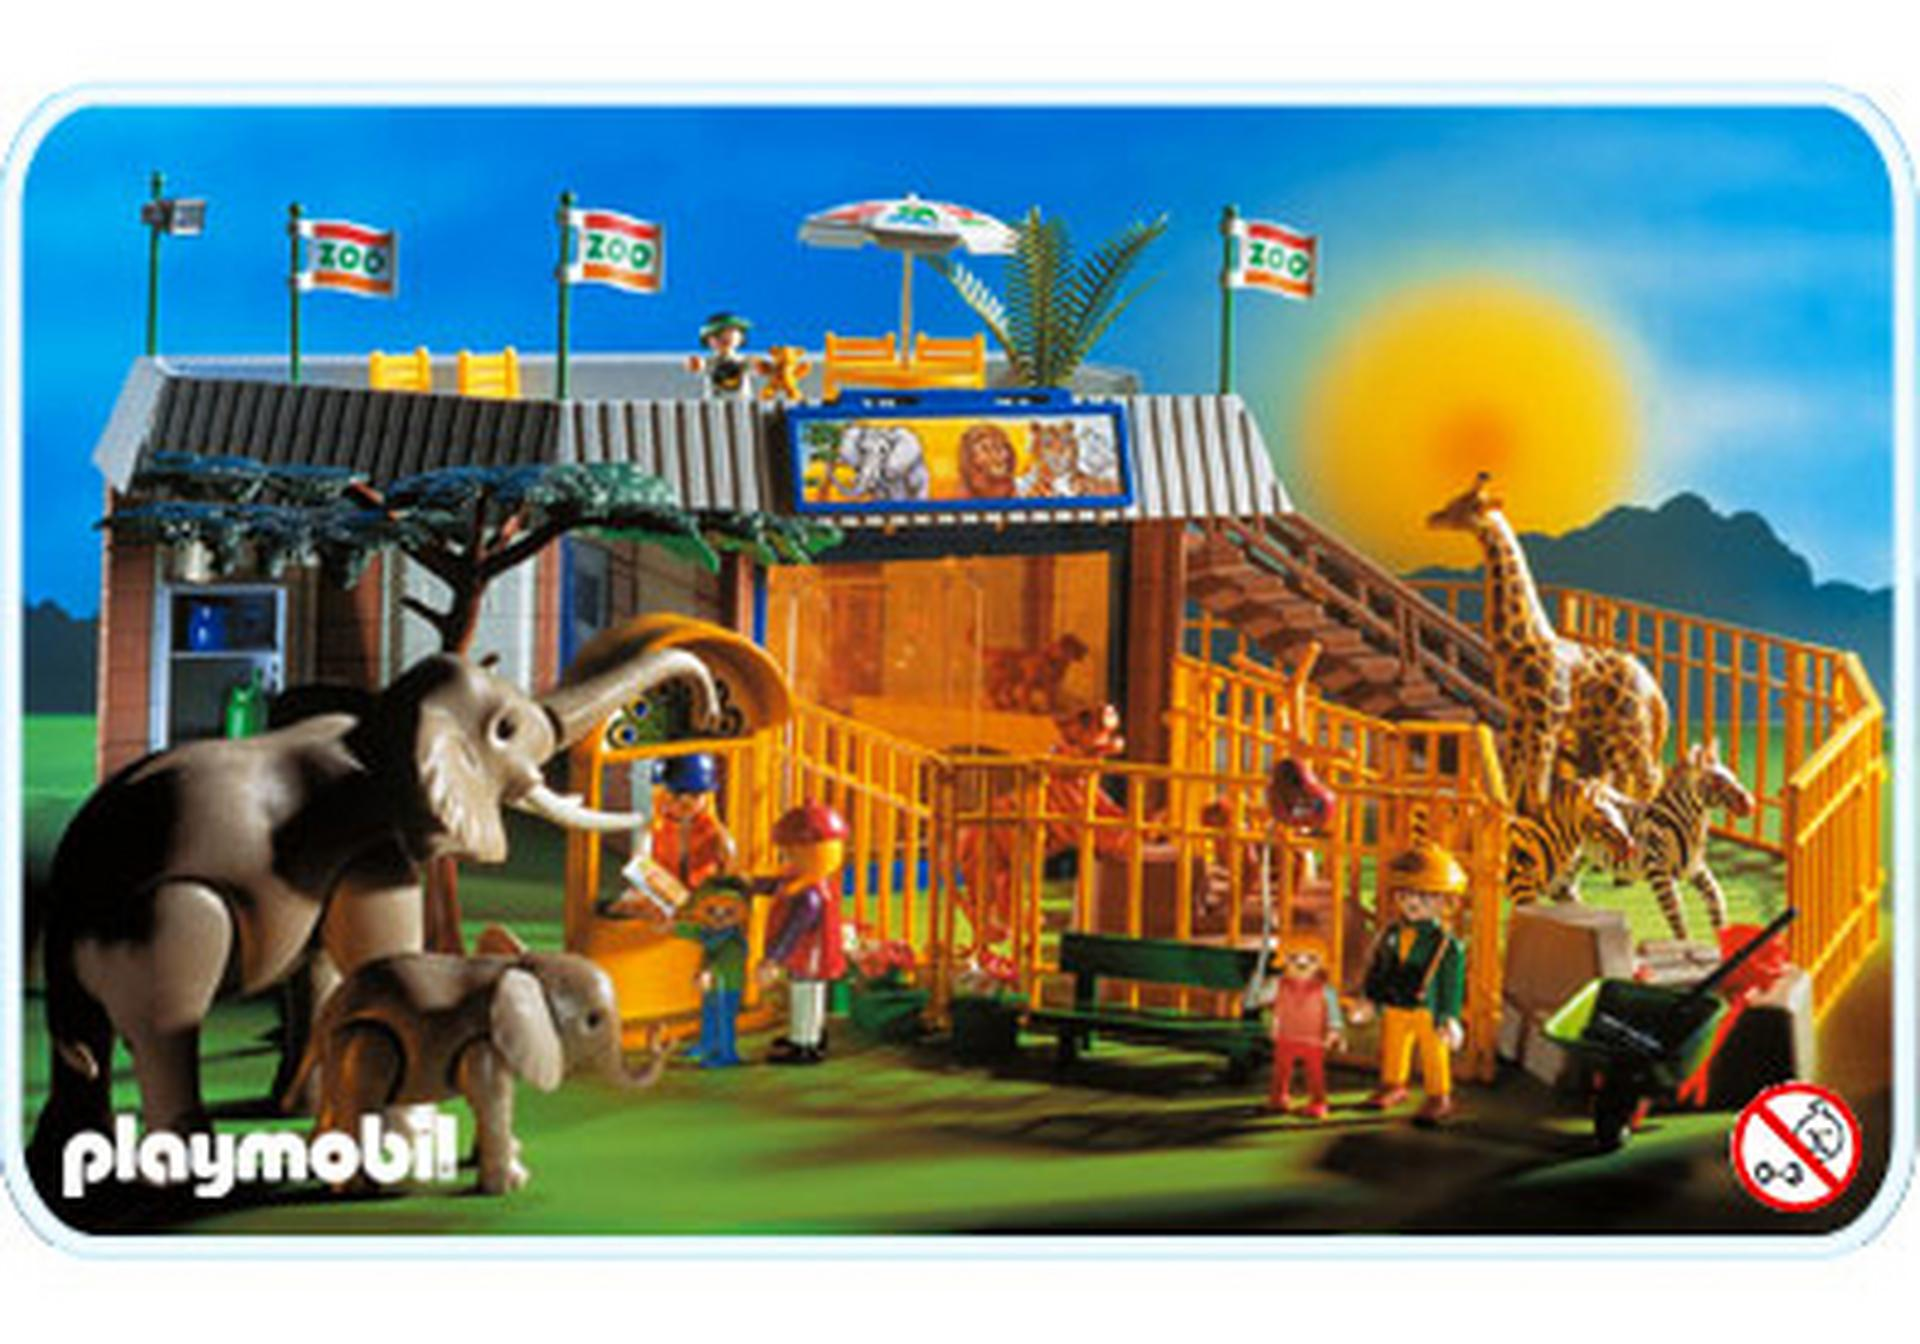 zoo animaux sauvages 3634 a playmobil france. Black Bedroom Furniture Sets. Home Design Ideas